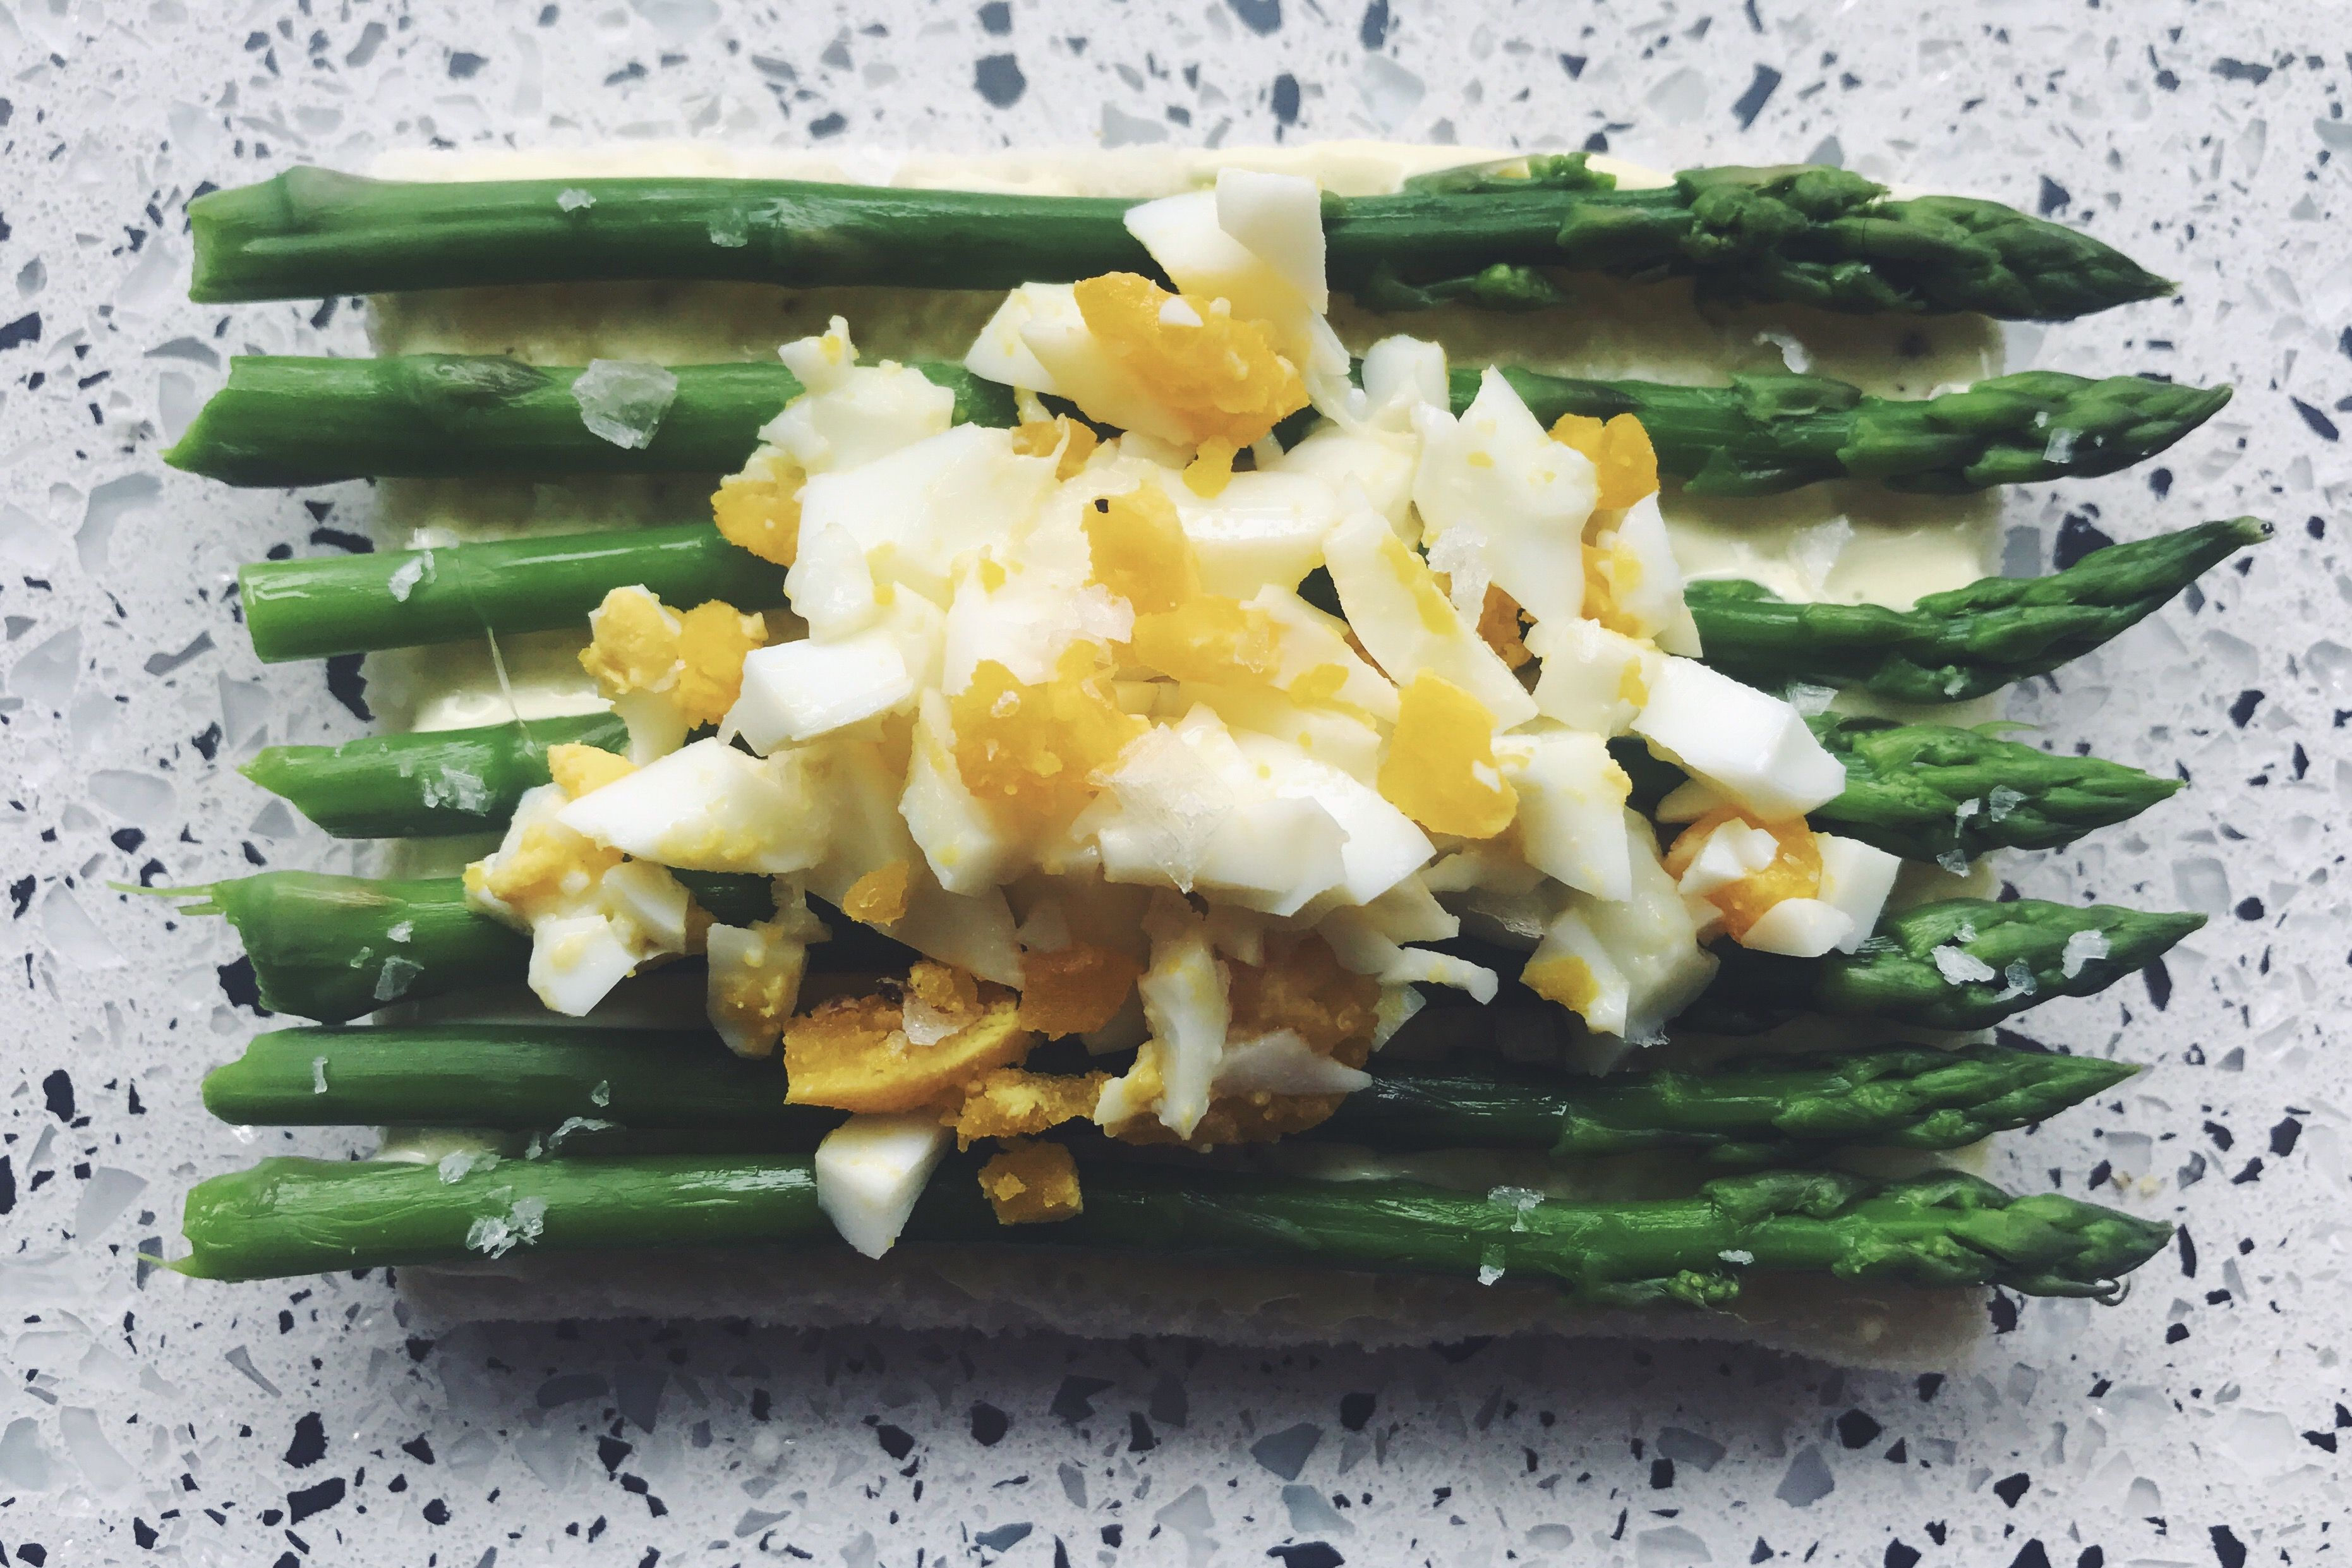 Tramezzini with Asparagus, Chopped Egg and Salt Flakes